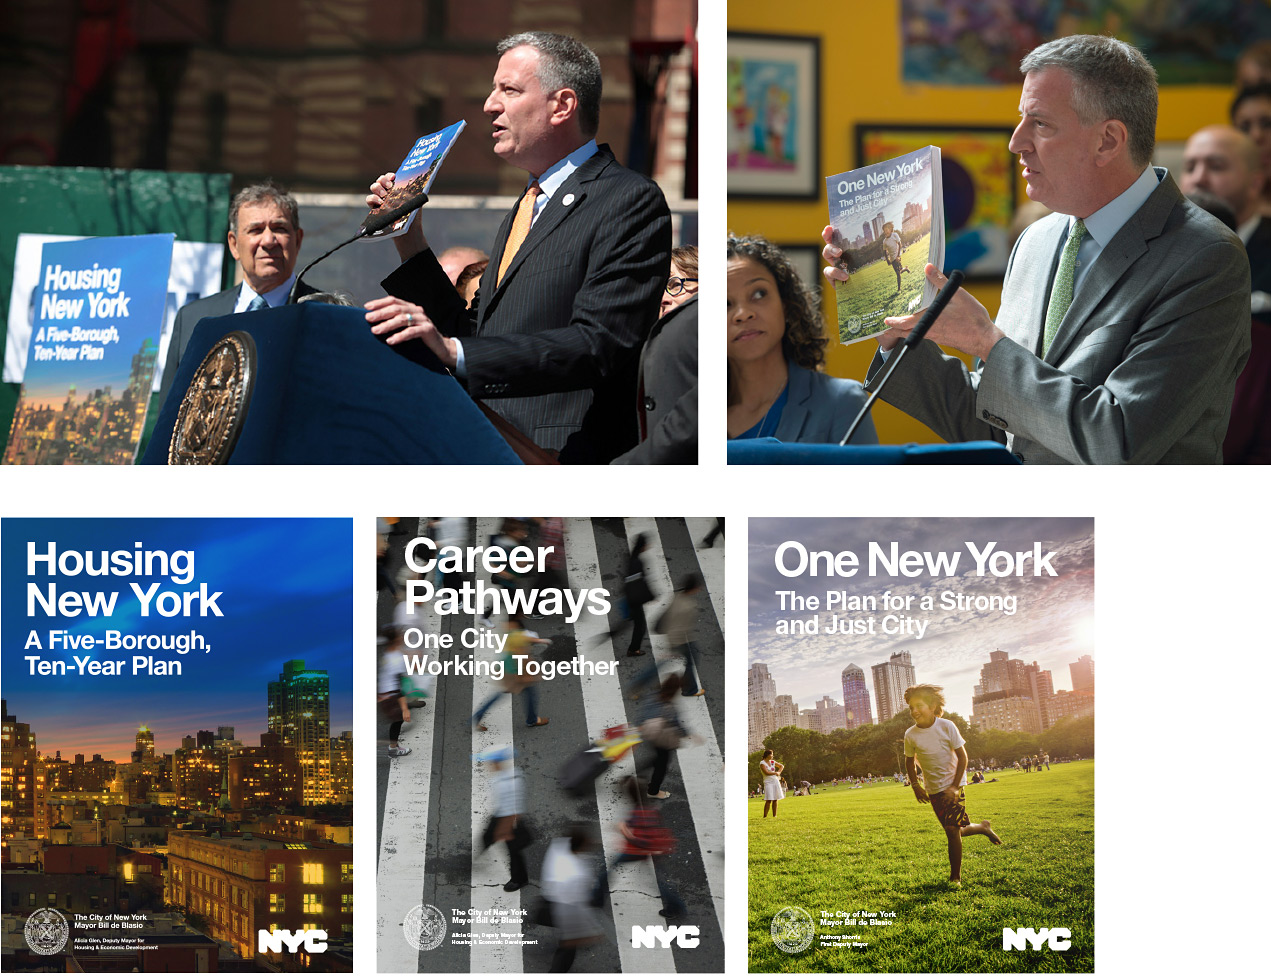 official City Hall publications